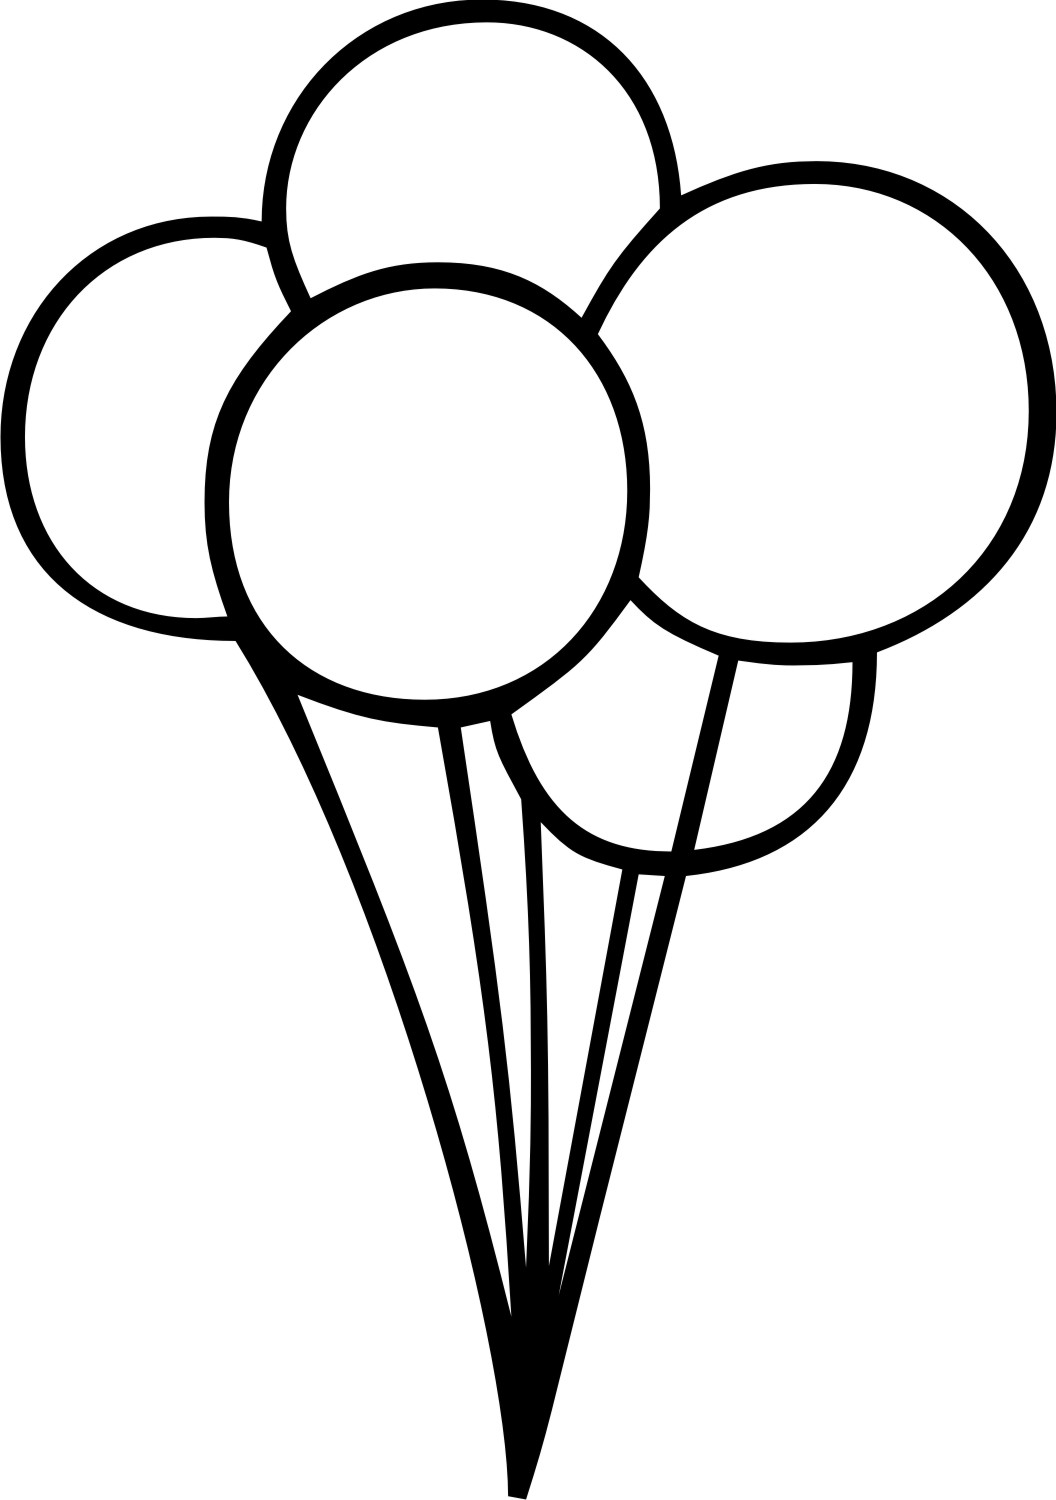 Free Birthday as well Balloon Outline furthermore I Love You Always Forever Design together with Black Color Text Wel e Images also Birthday Coloring Pages. on happy birthday wishes flowers